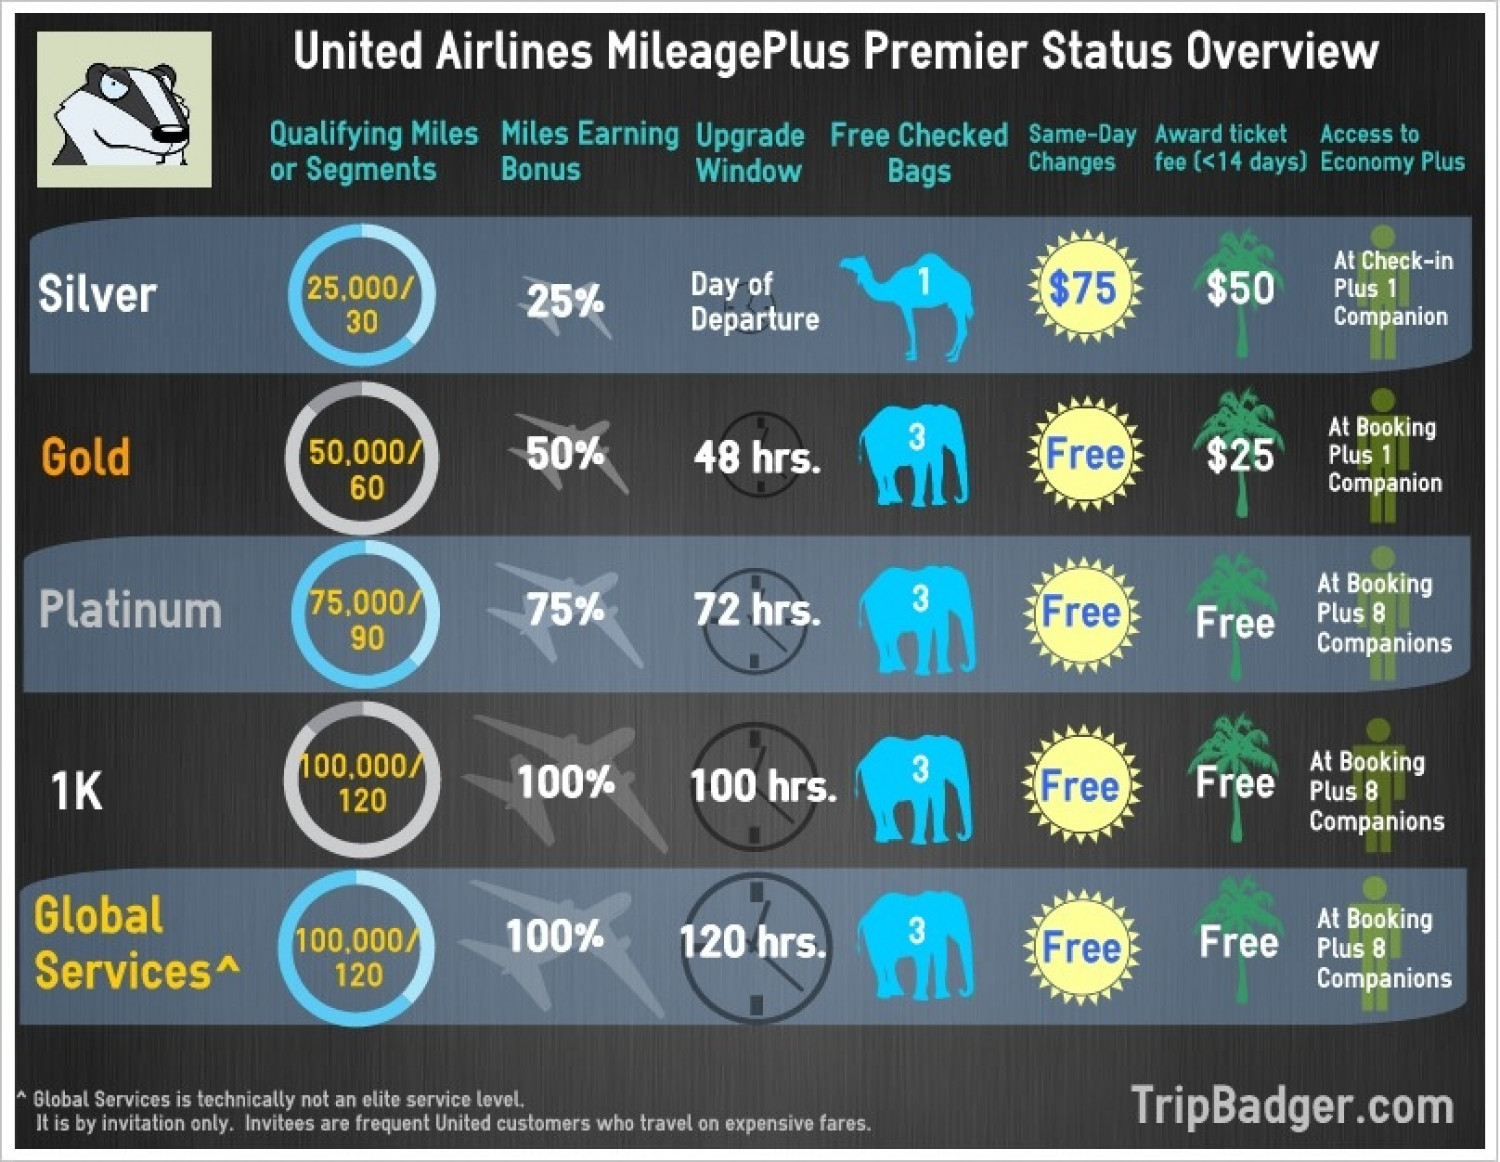 United MileagePlus Premier Status Benefits Infographic